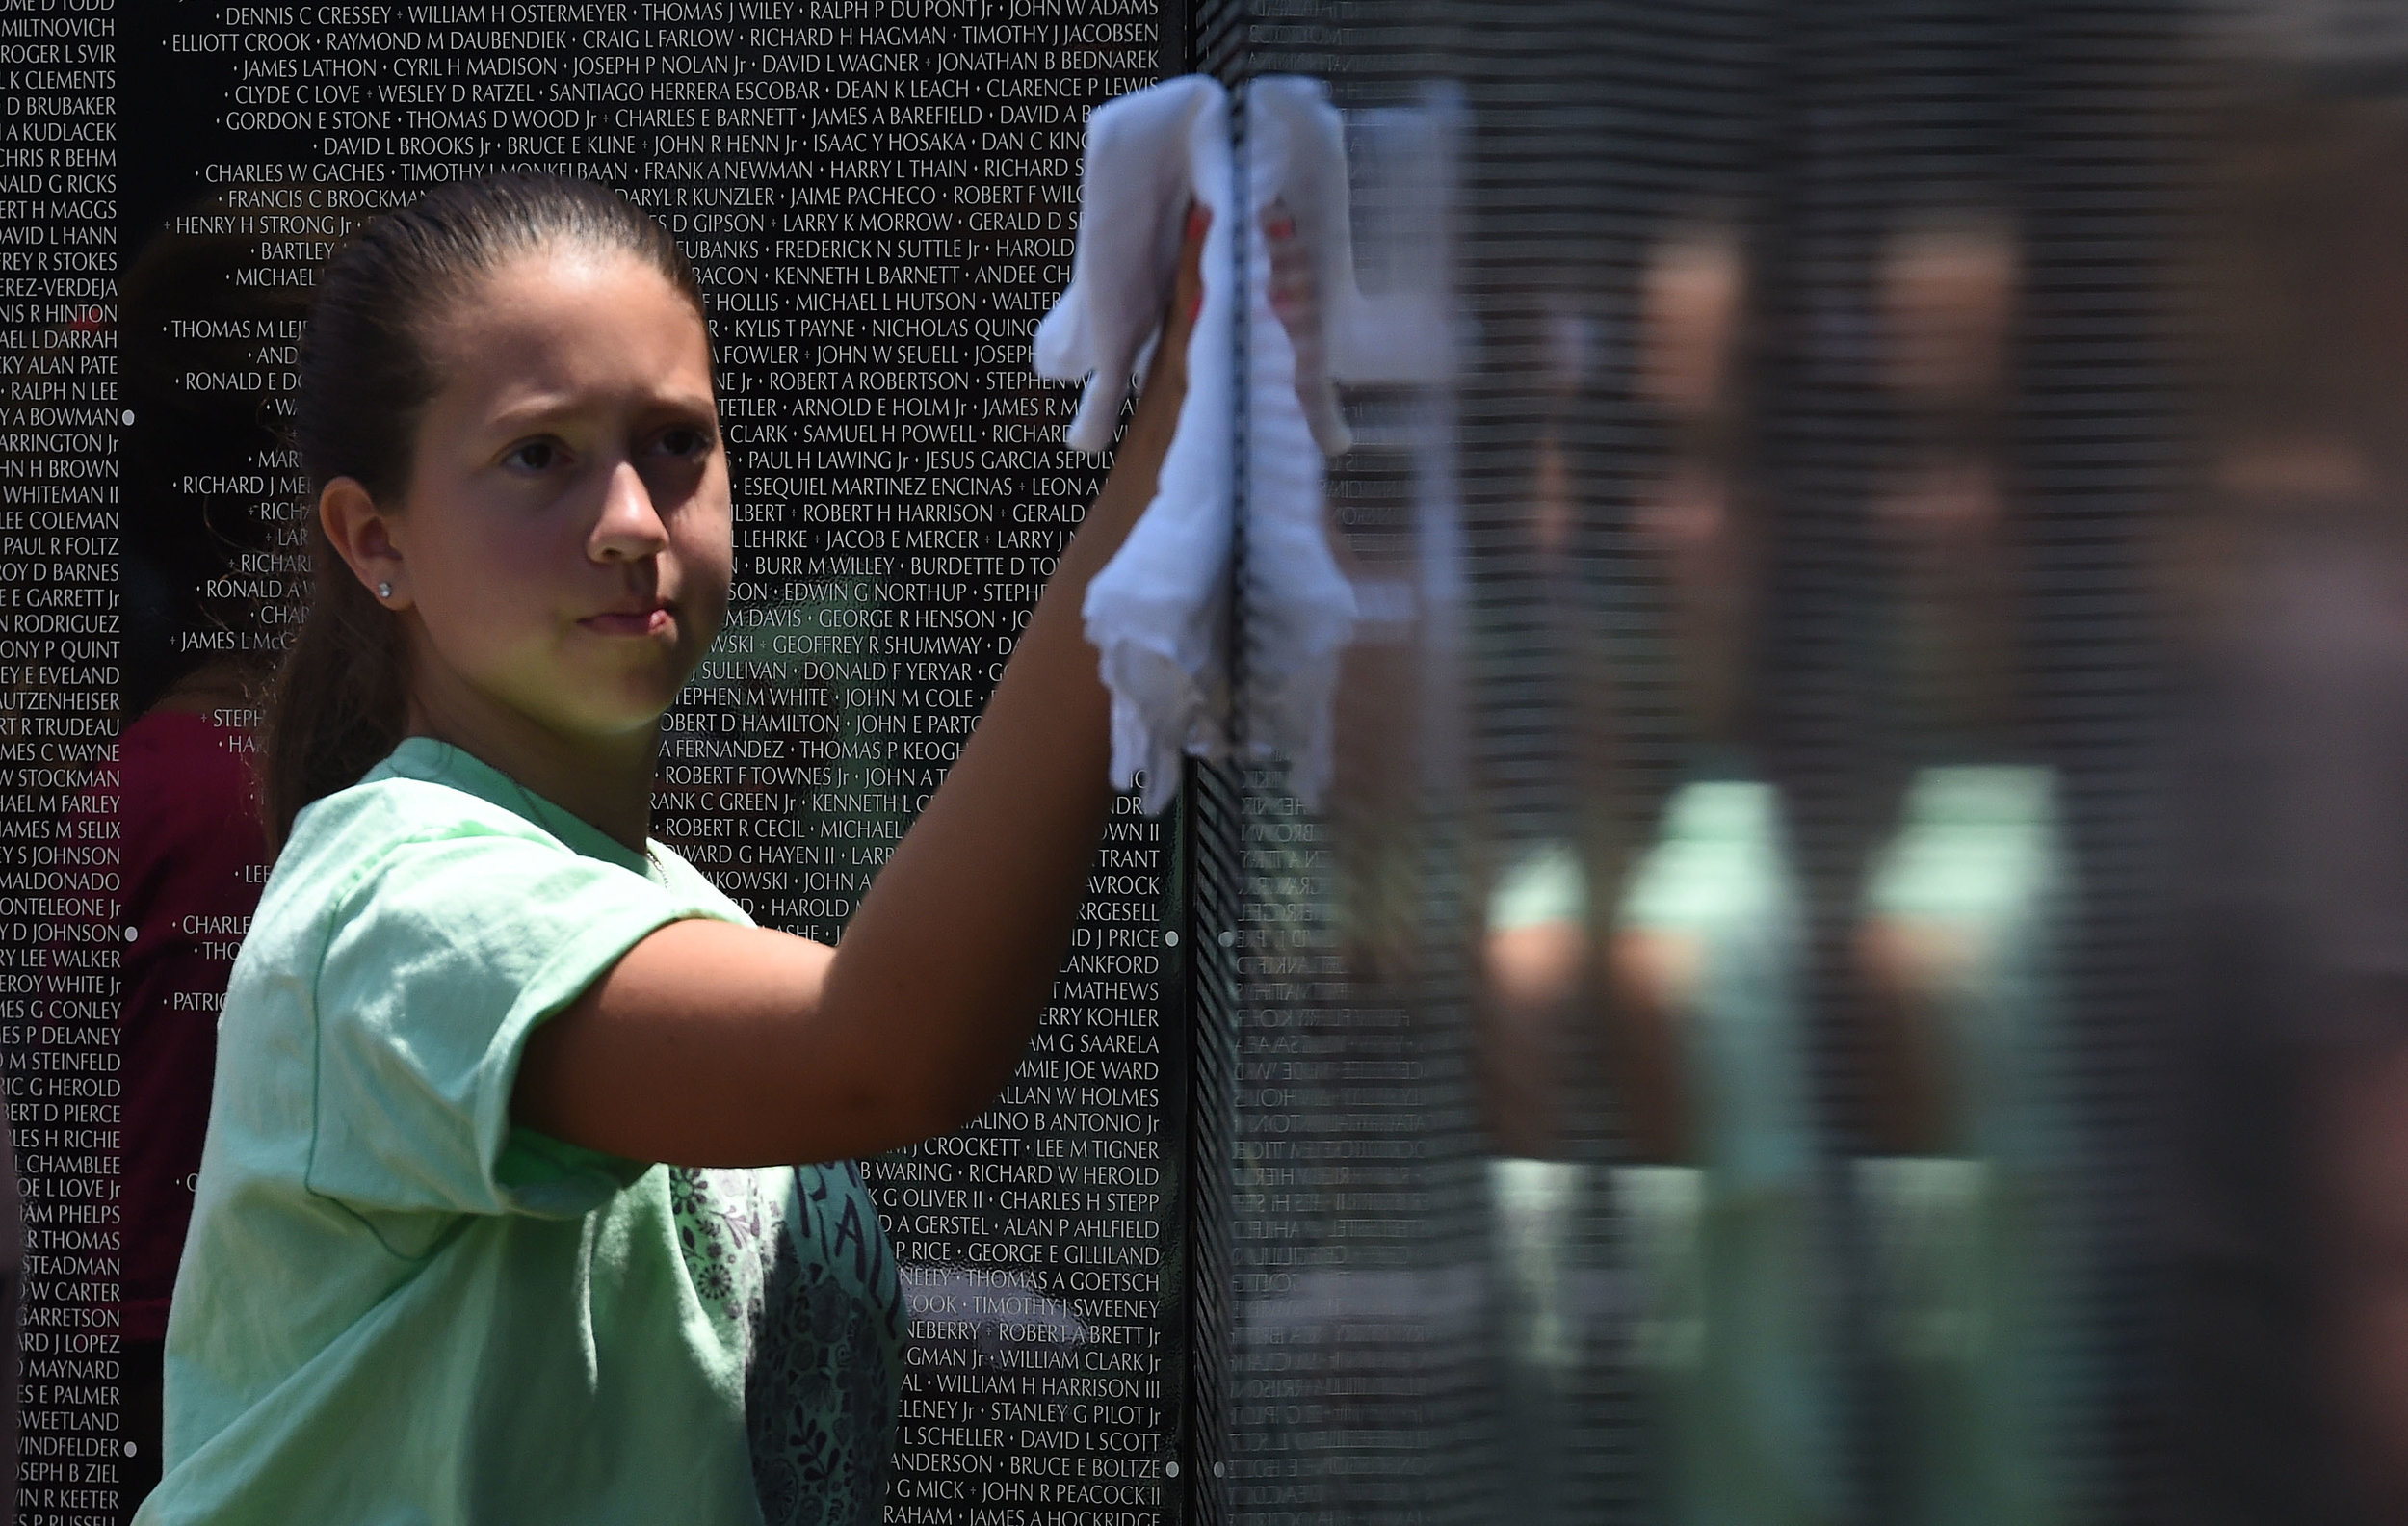 Alaina Gaitan, 12 from Grand Terrace, helps clean a panel of the Vietnam Moving Wall as it is being installed Thursday at Ayala Park in Bloomington. Volunteers, many being Vietnam veterans, helped construct the Vietnam Moving Wall in Ayala Park in Bloomington Thursday June 7, 2018. The wall, containing 58,318 names, with 132 being from San Bernardino County, will be on display 24-hours a day beginning Friday and lasting through Monday.